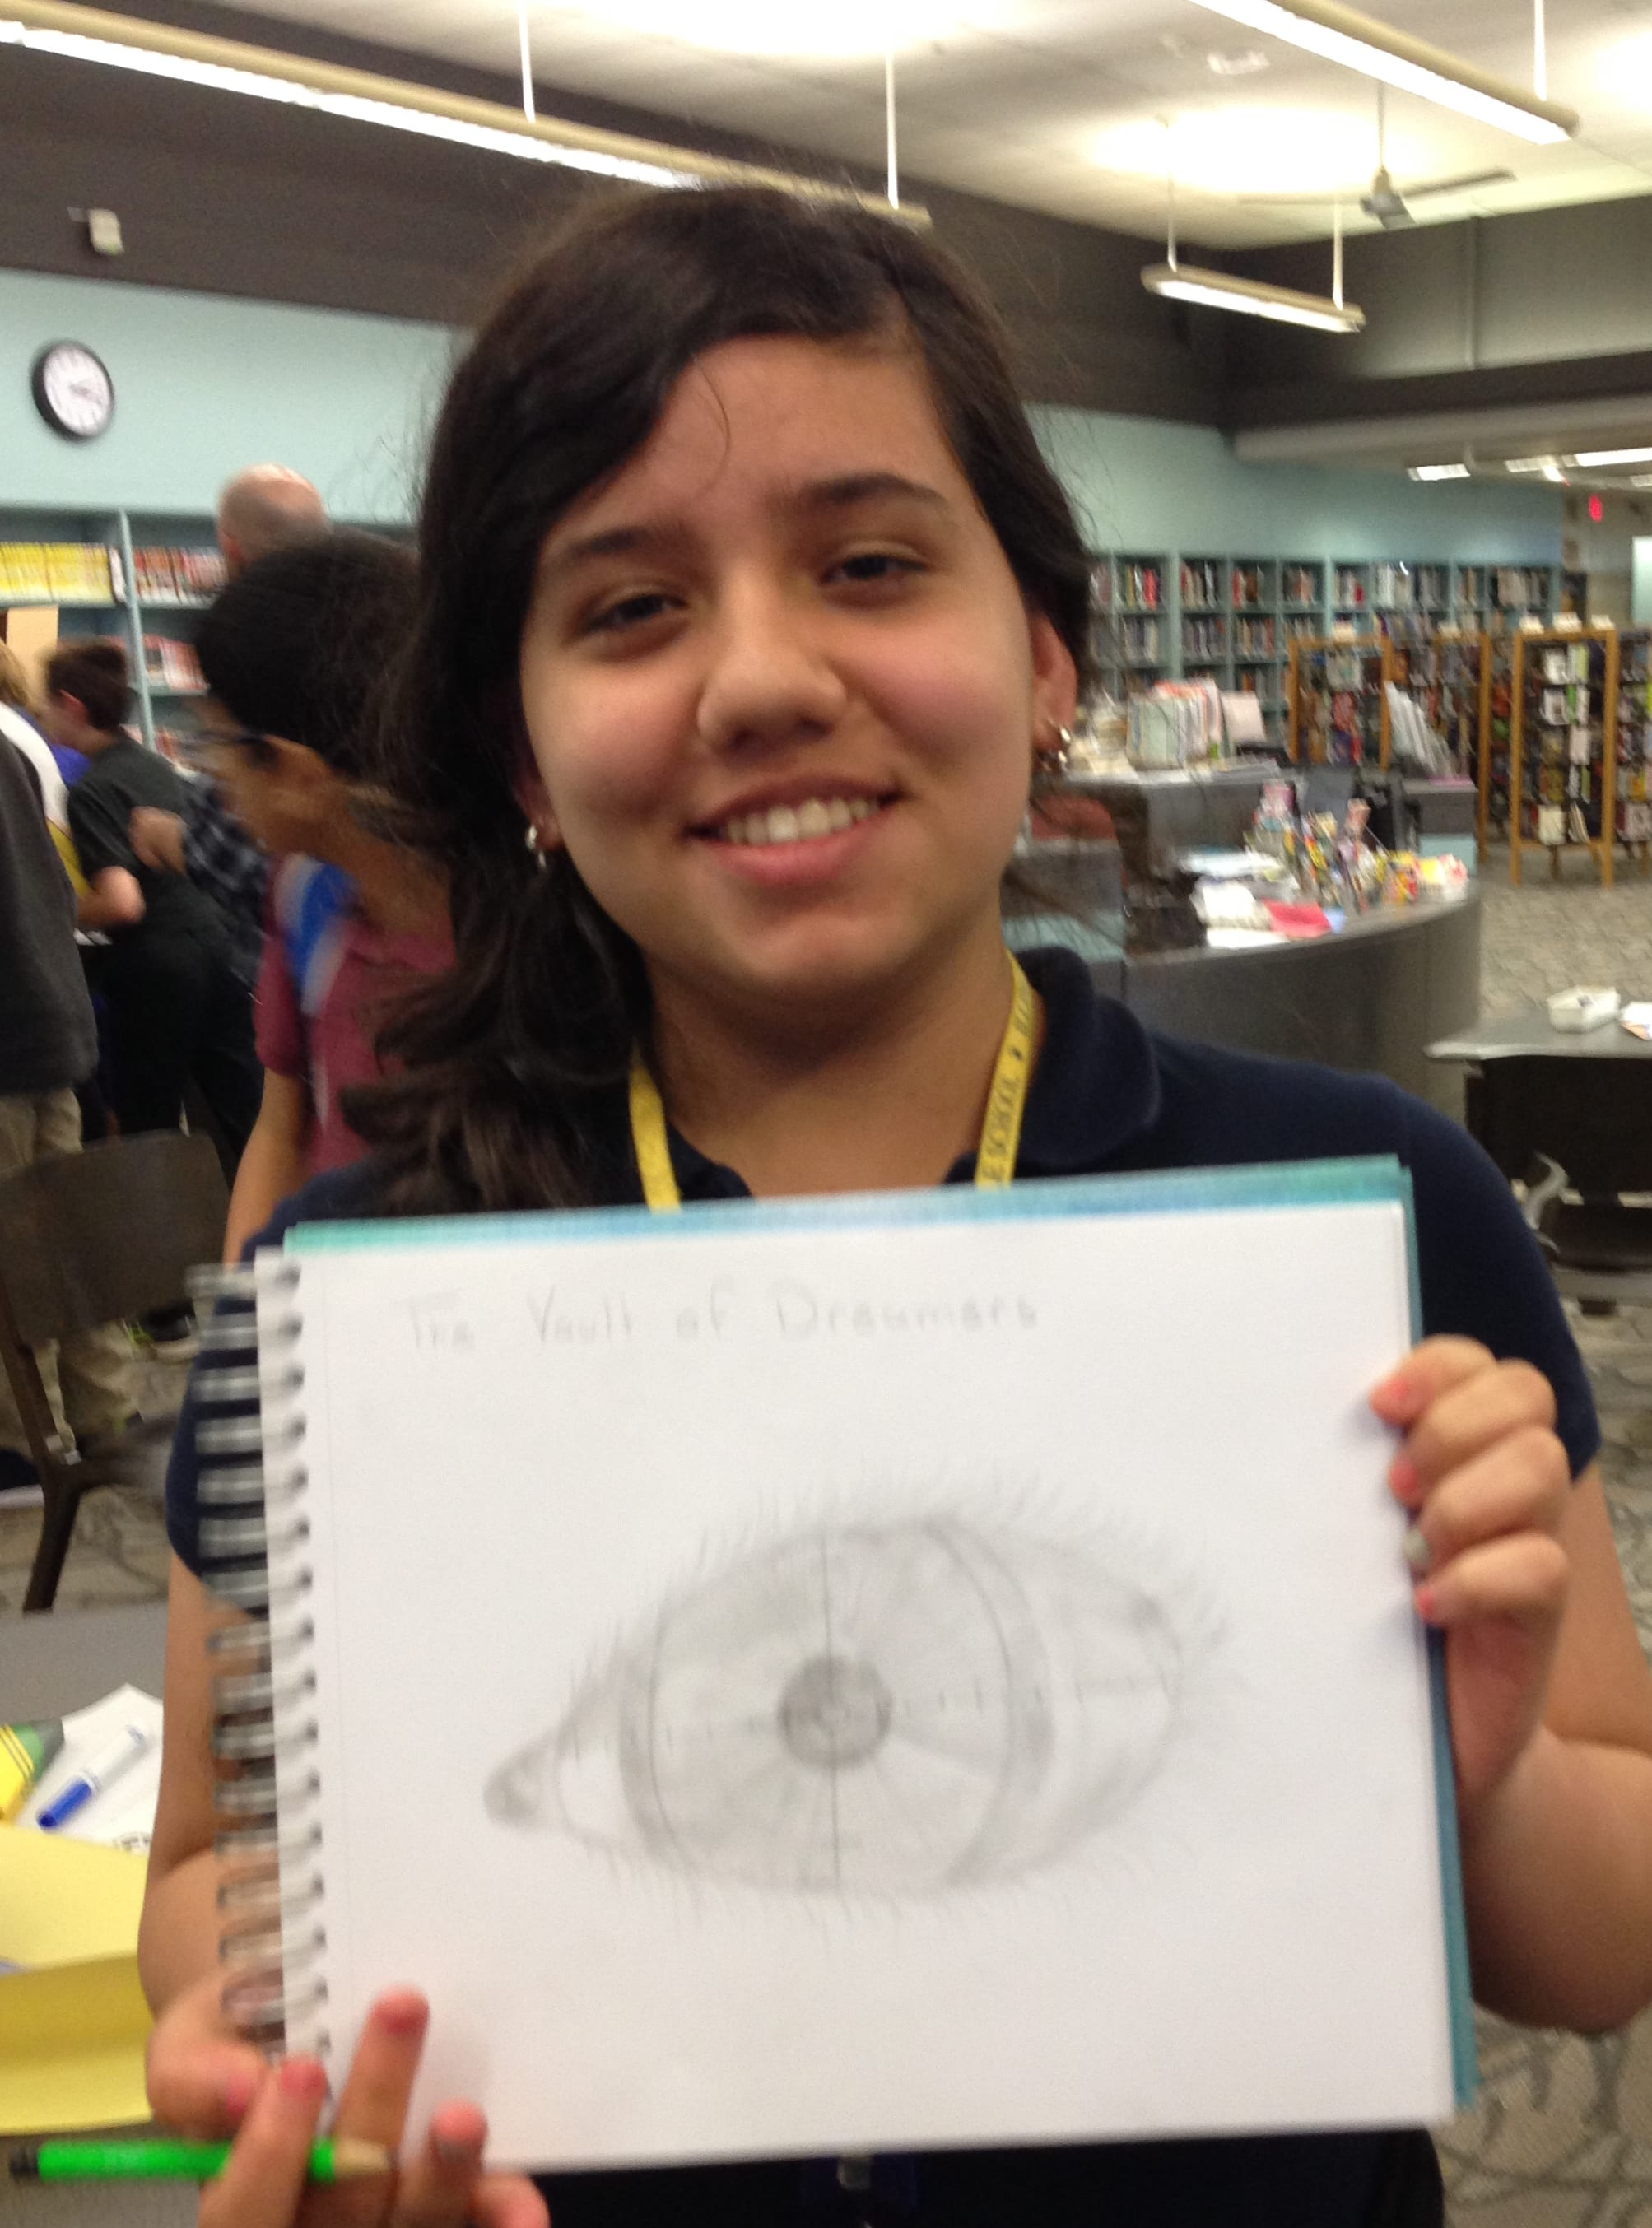 Artist S. H. shares her drawing inspired by The Vault of Dreamers.